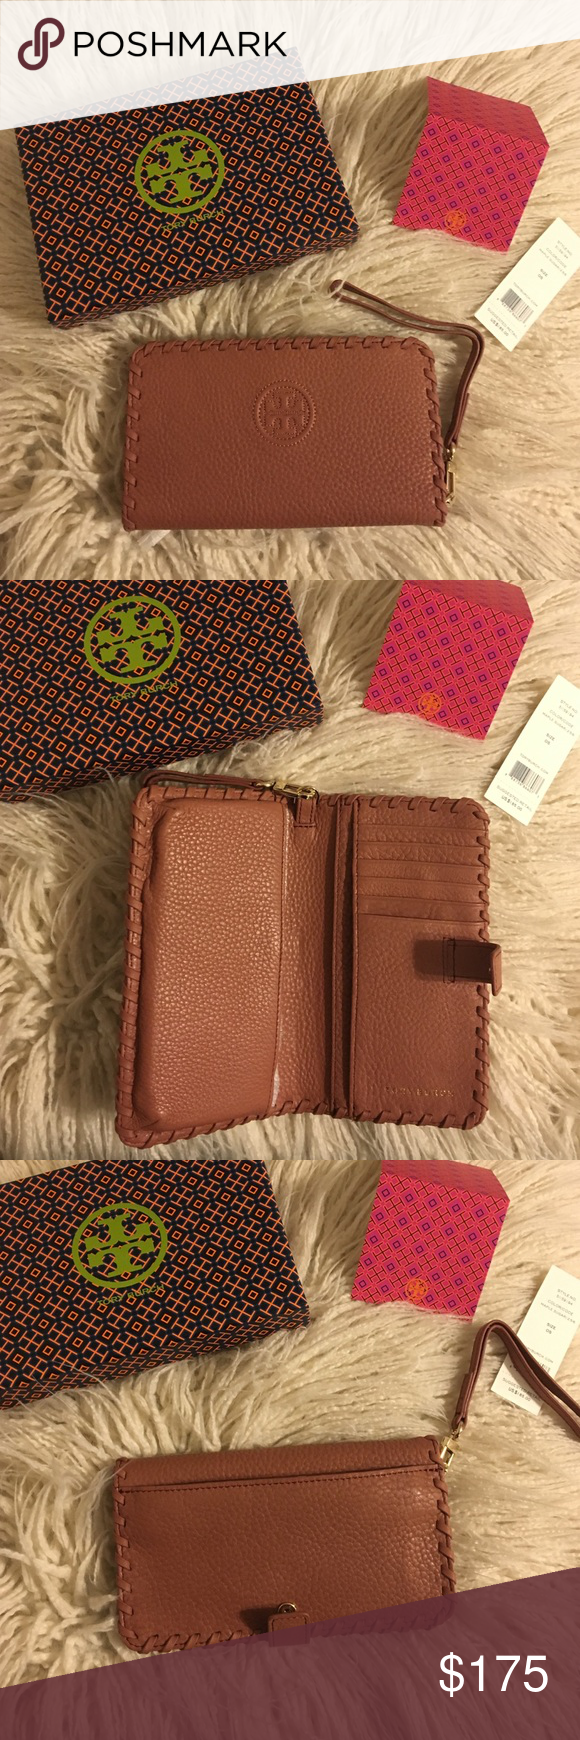 """Tory Burch Marion Smartphone Bi-Fold Wristlet NWT Tory Burch Marion Smartphone Bifold Wristlet! It's the all-in-one for your mobile - it fits an iPhone 6 - and your cash and cards. Made of super-soft pebbled leather, it features plenty of pockets and compartments. Color is maple sugar! * Fold-over pin snap closure * Removable wriststrap * Fits an iPhone 5 and 6 * Length: 6.97""""  * Height: 3.98""""  No trades No lowballing ✅Bundle Discount  Authentic items  ✨purchase at listed price get a free…"""